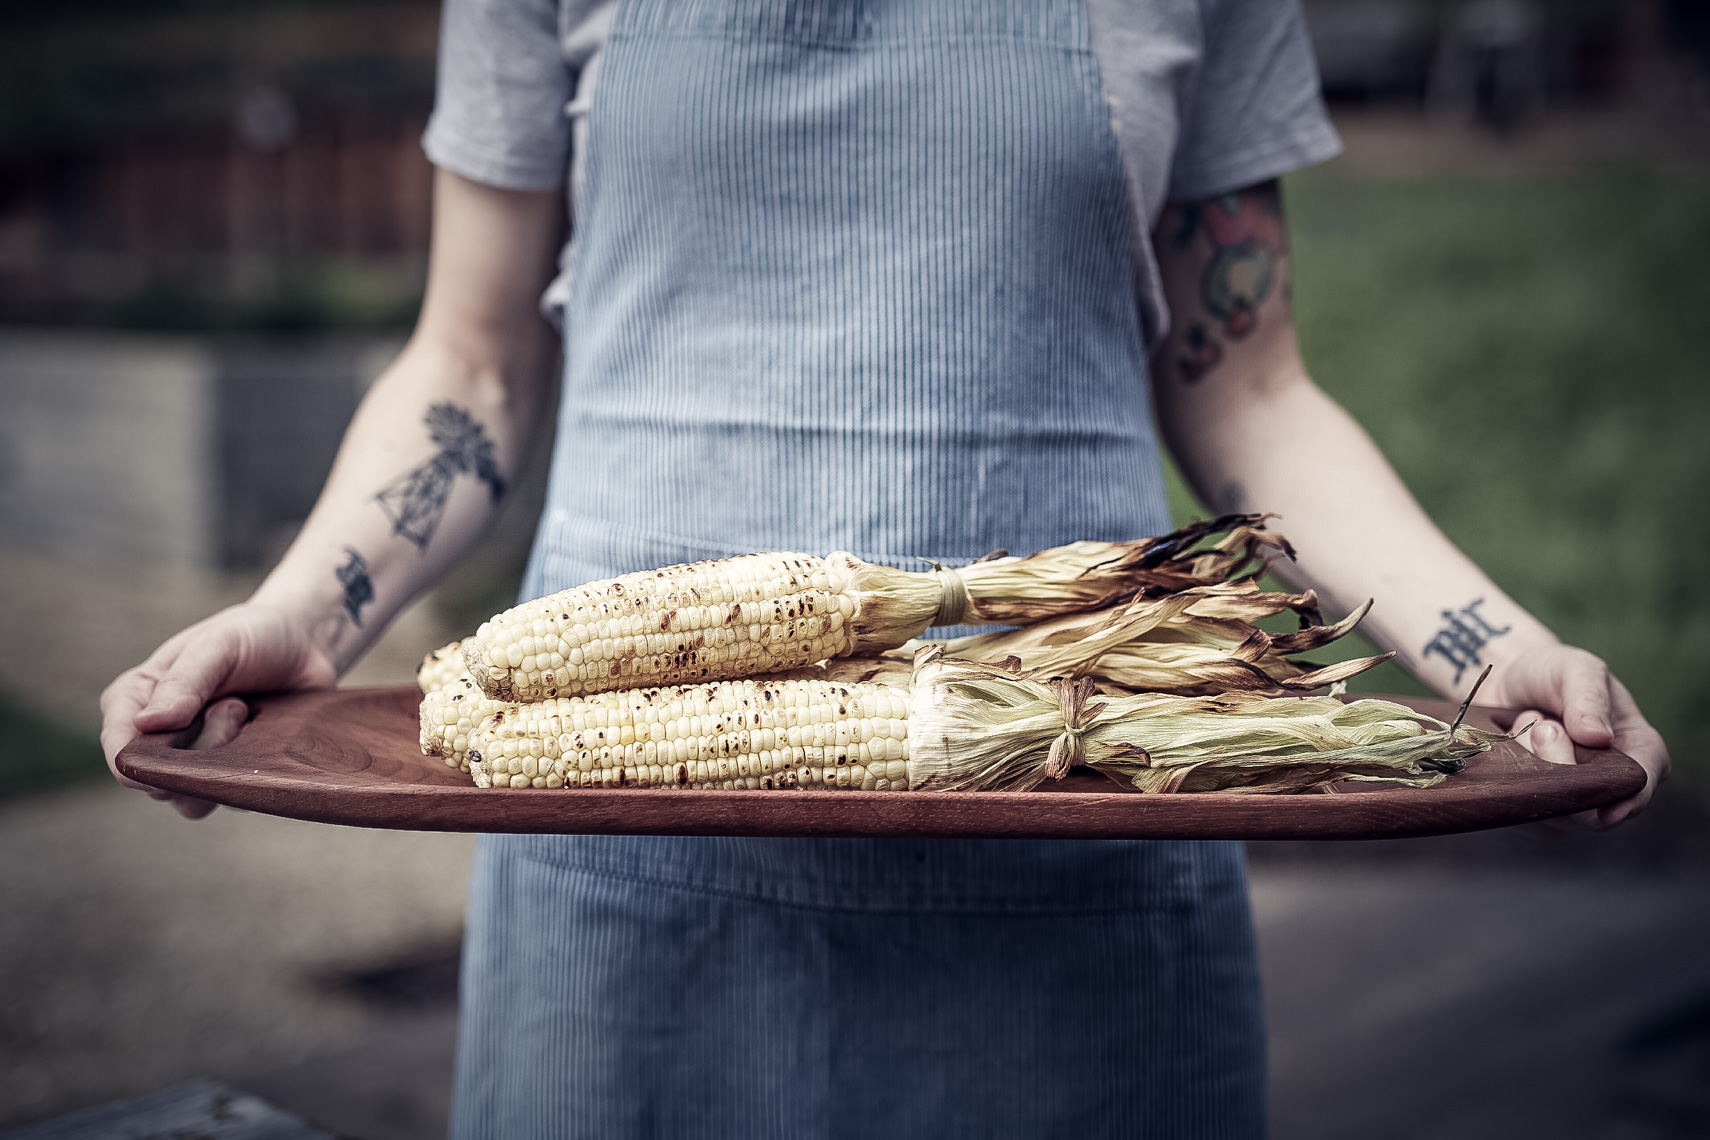 chef holding wooden tray of freshly grilled corn on the cob